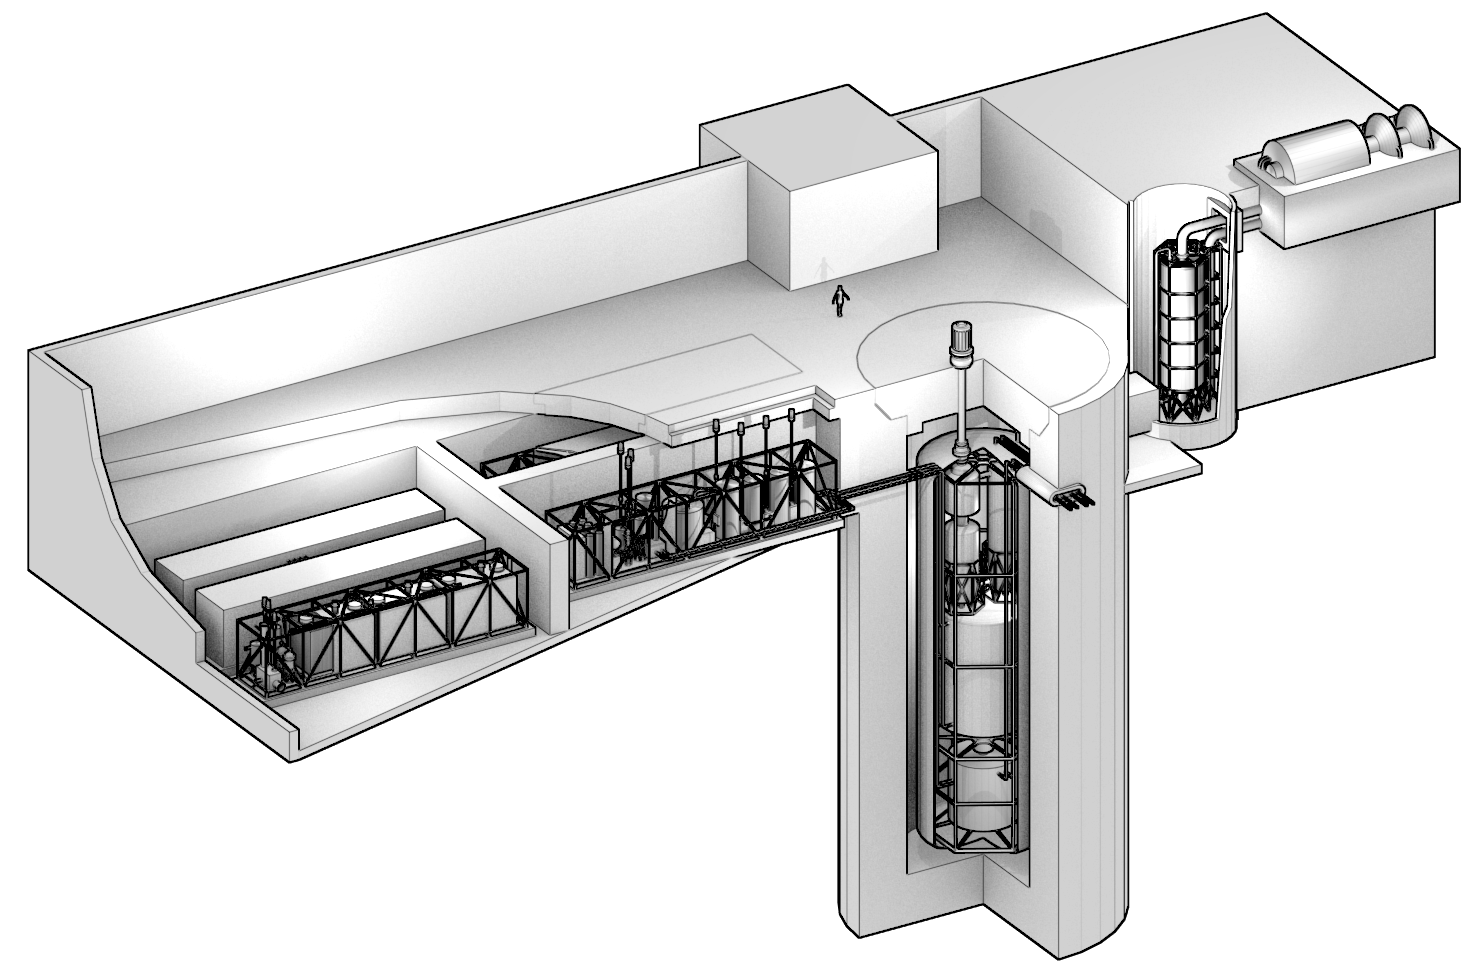 Update on the Liquid Fluoride Thorium Reactor projects in China ...